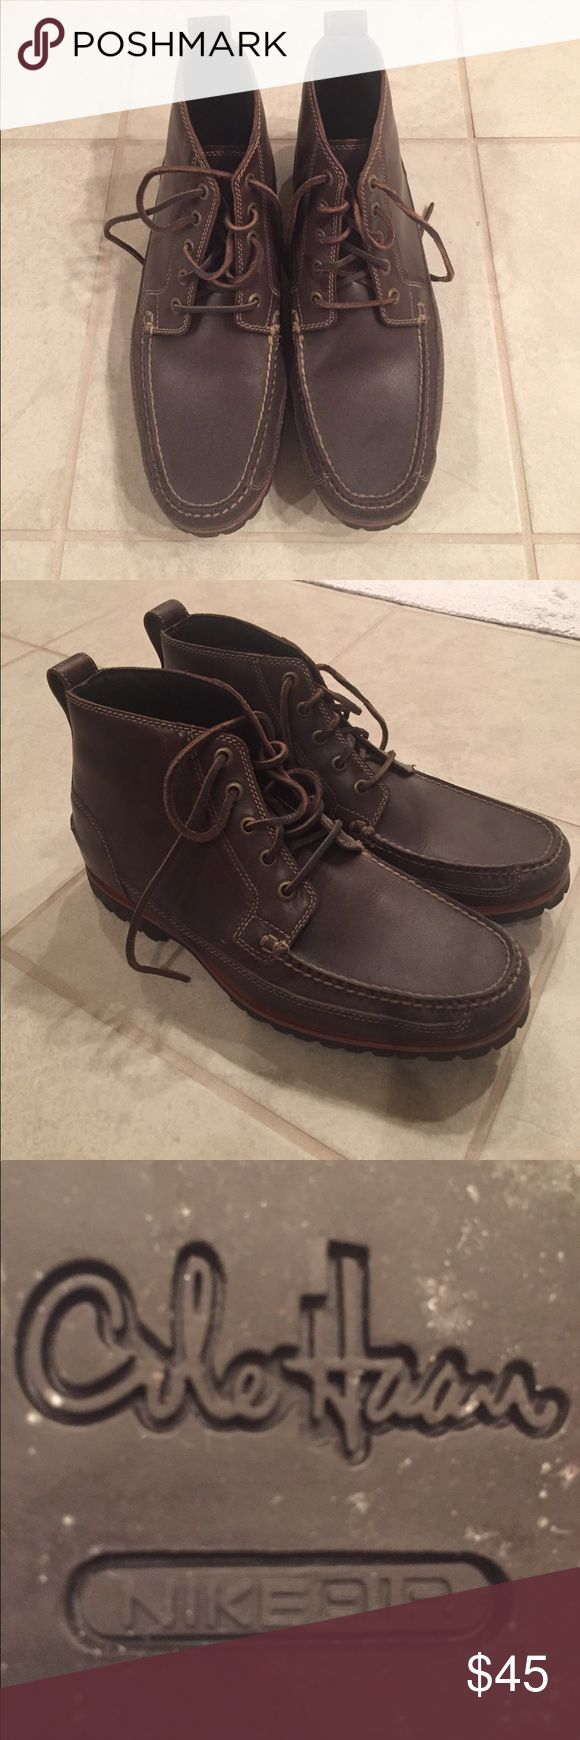 Men's Cole Haan Boots with Nike Air Technology Men's Cole Haan Boots with Nike Air Technology - worn only a few times - excellent condition- size 11 Cole Haan Shoes Boots